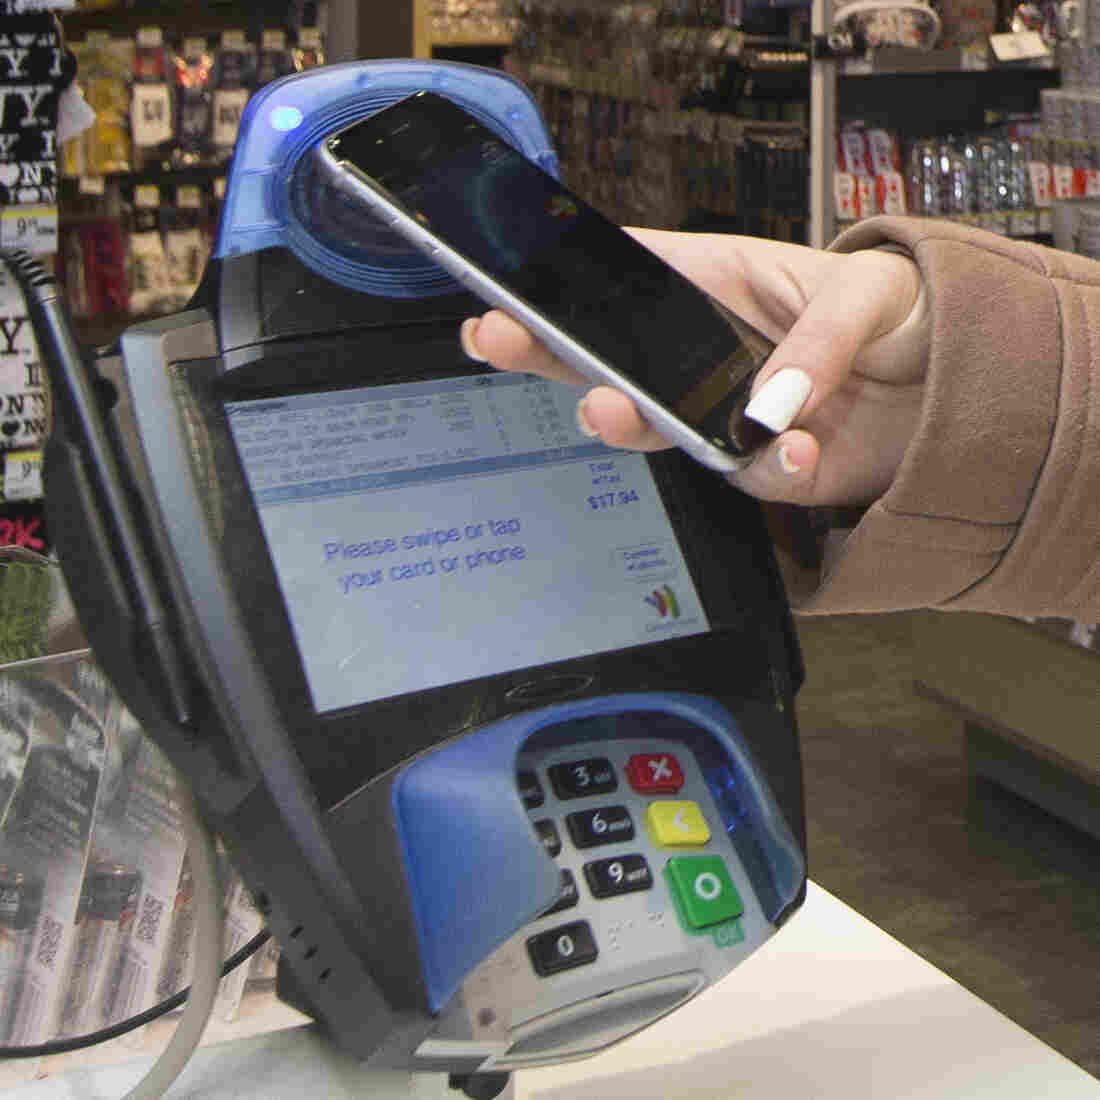 CVS Pulls Apple Pay, And Many See A Fight Over Mobile Wallets